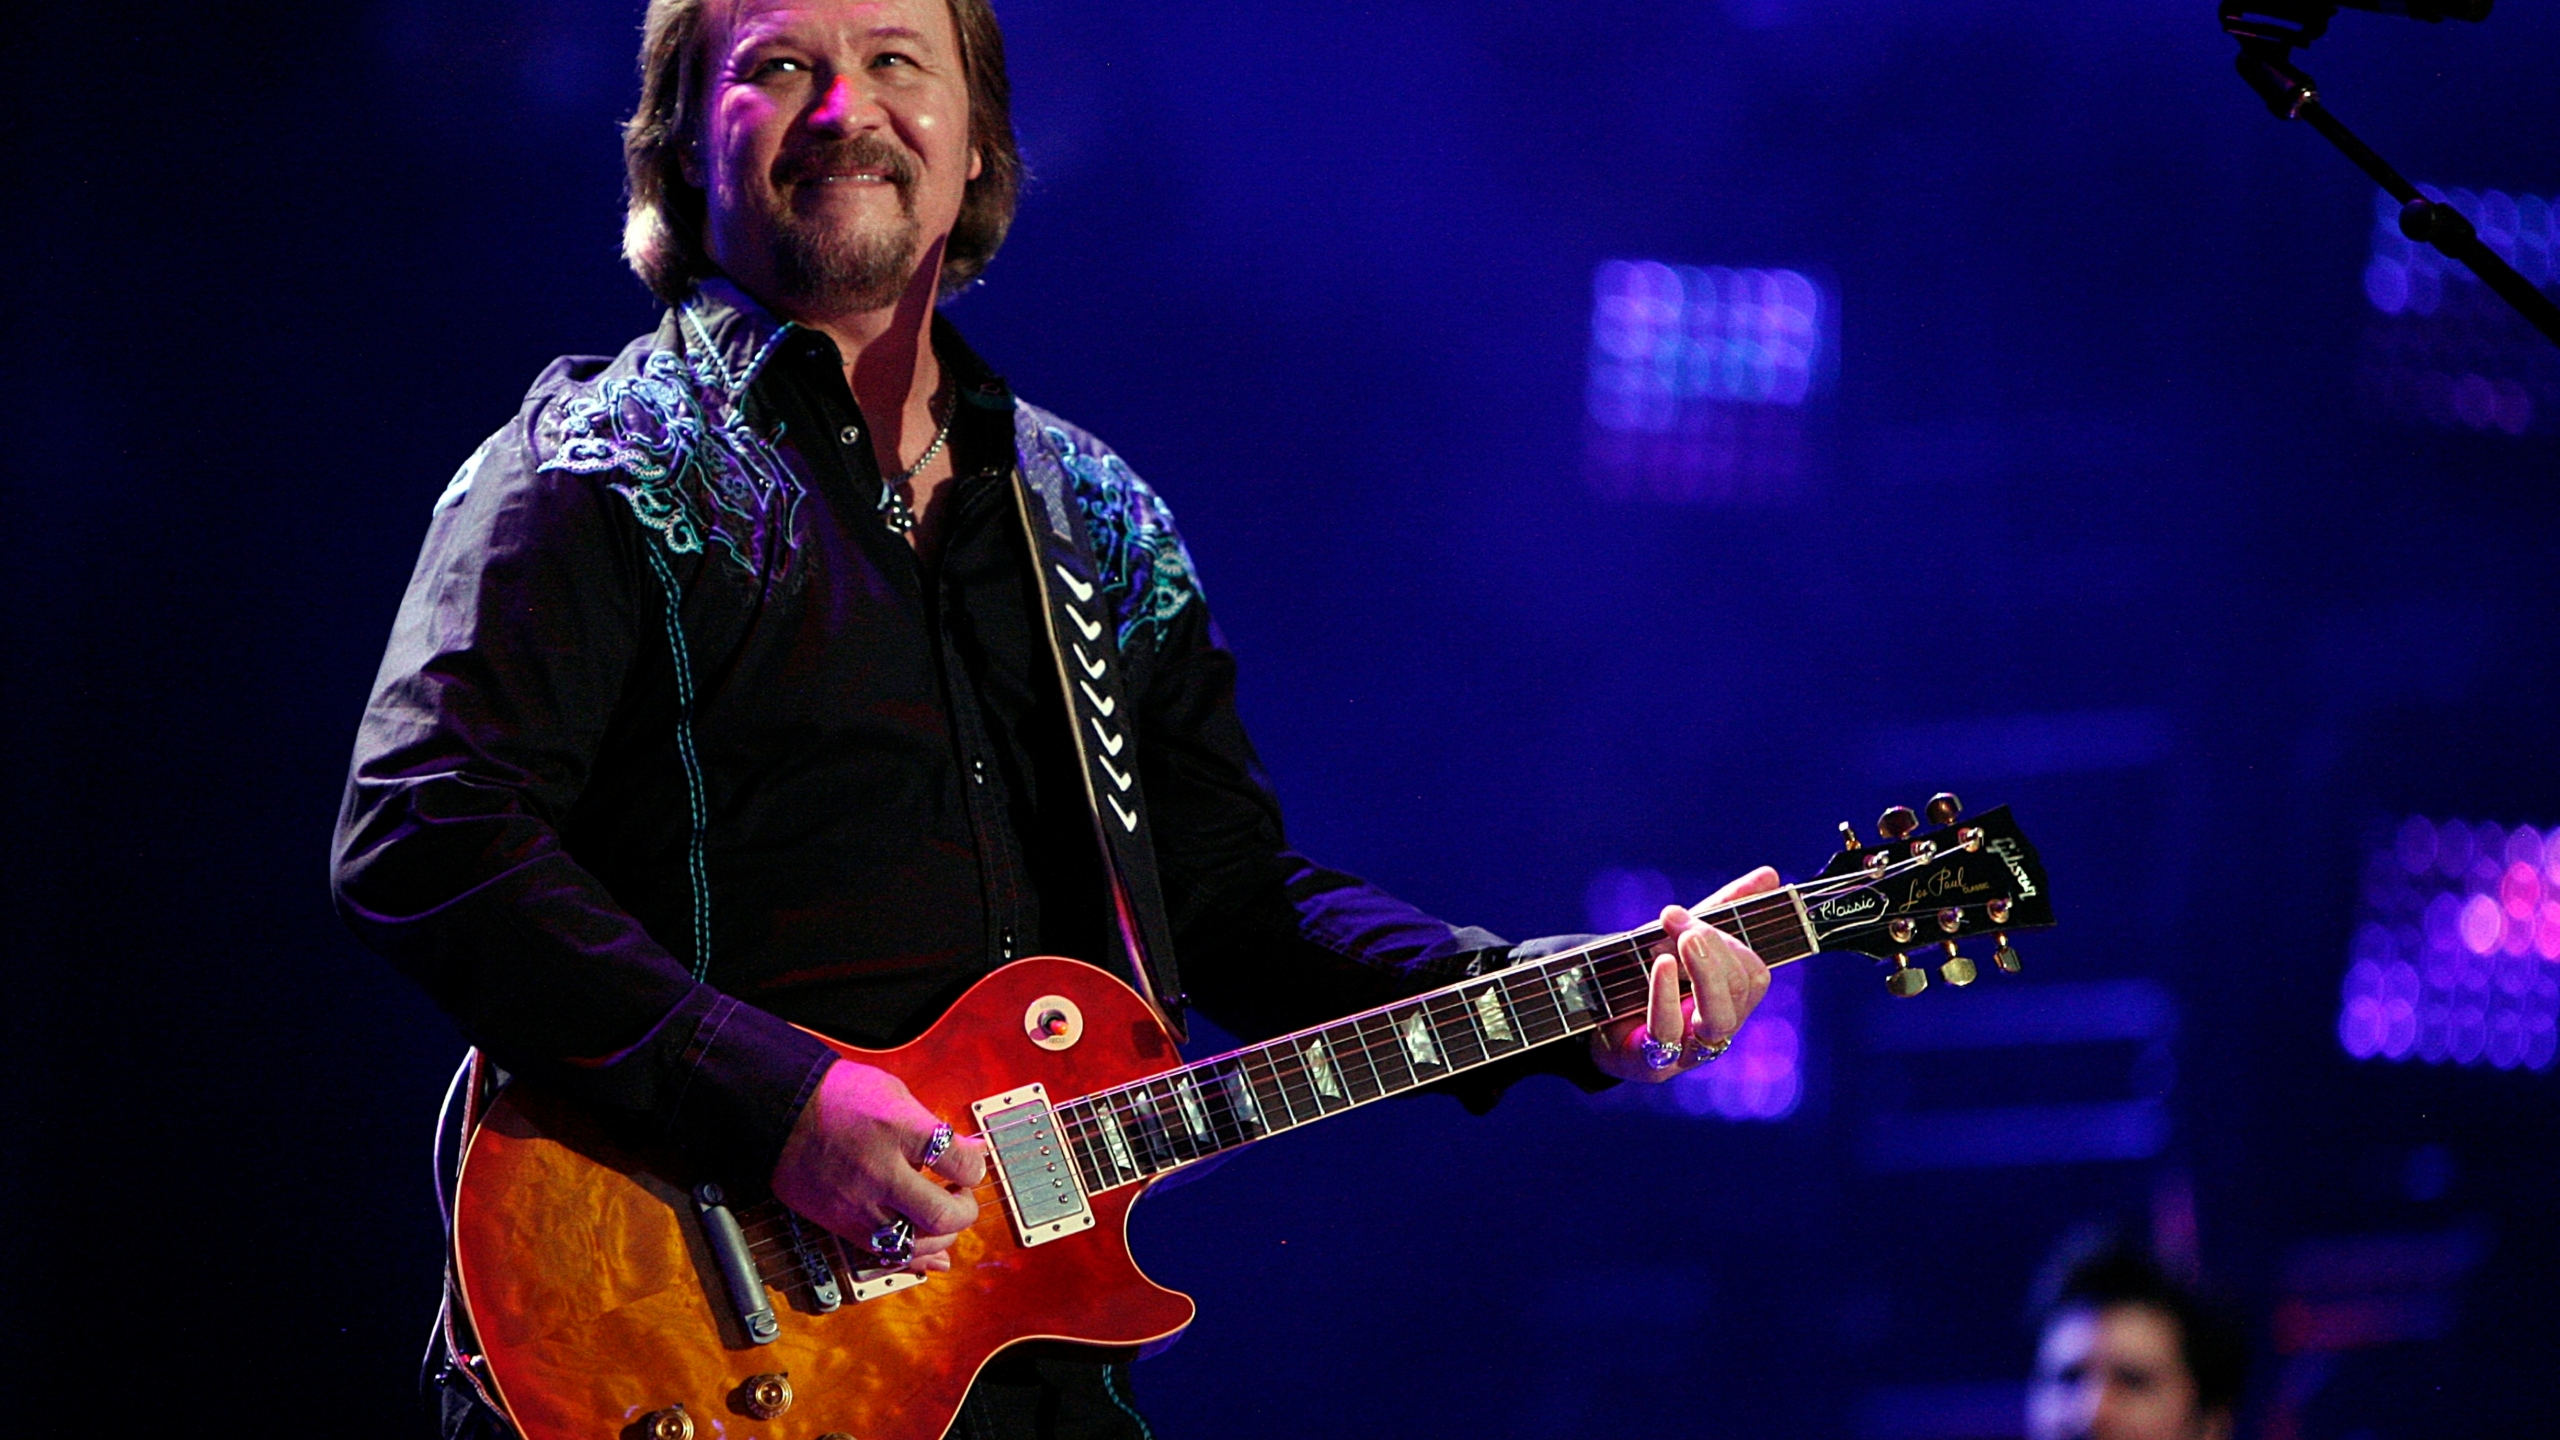 Fatal Crash Travis Tritt Tour Bus_1558229498404